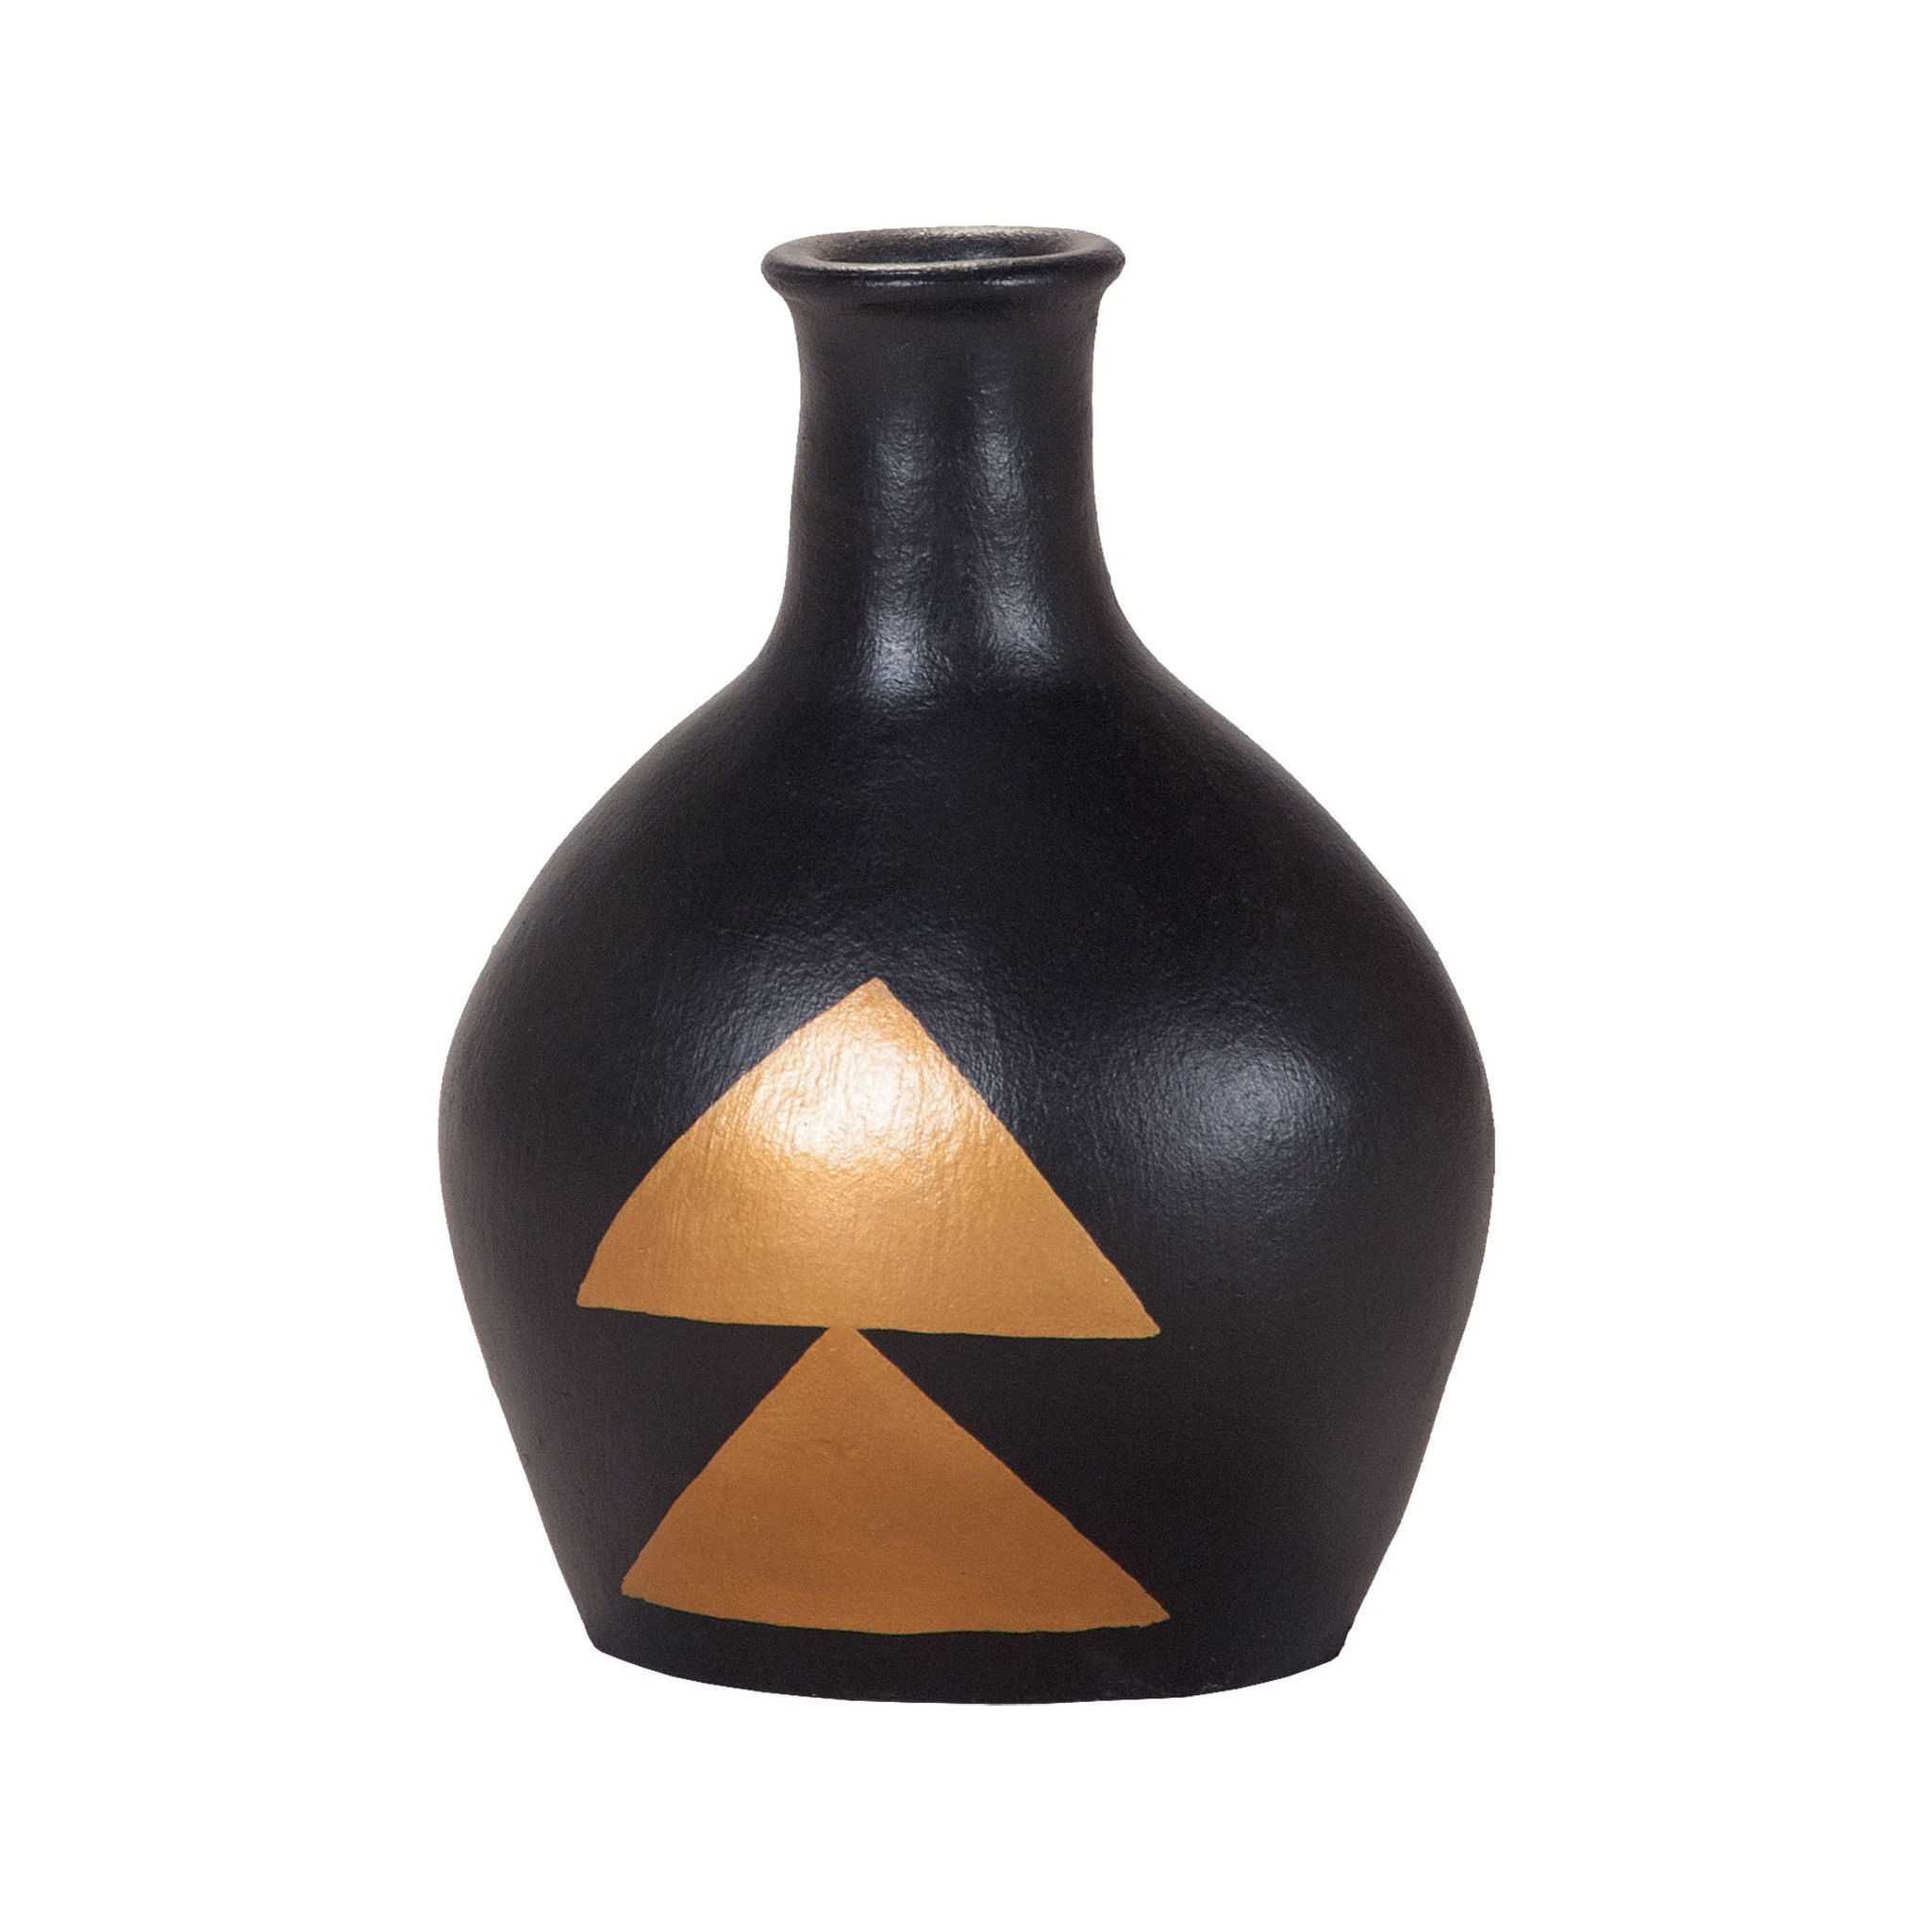 terracotta vases wholesale of golden direction hand painted jug products pinterest products with regard to golden direction hand painted jug